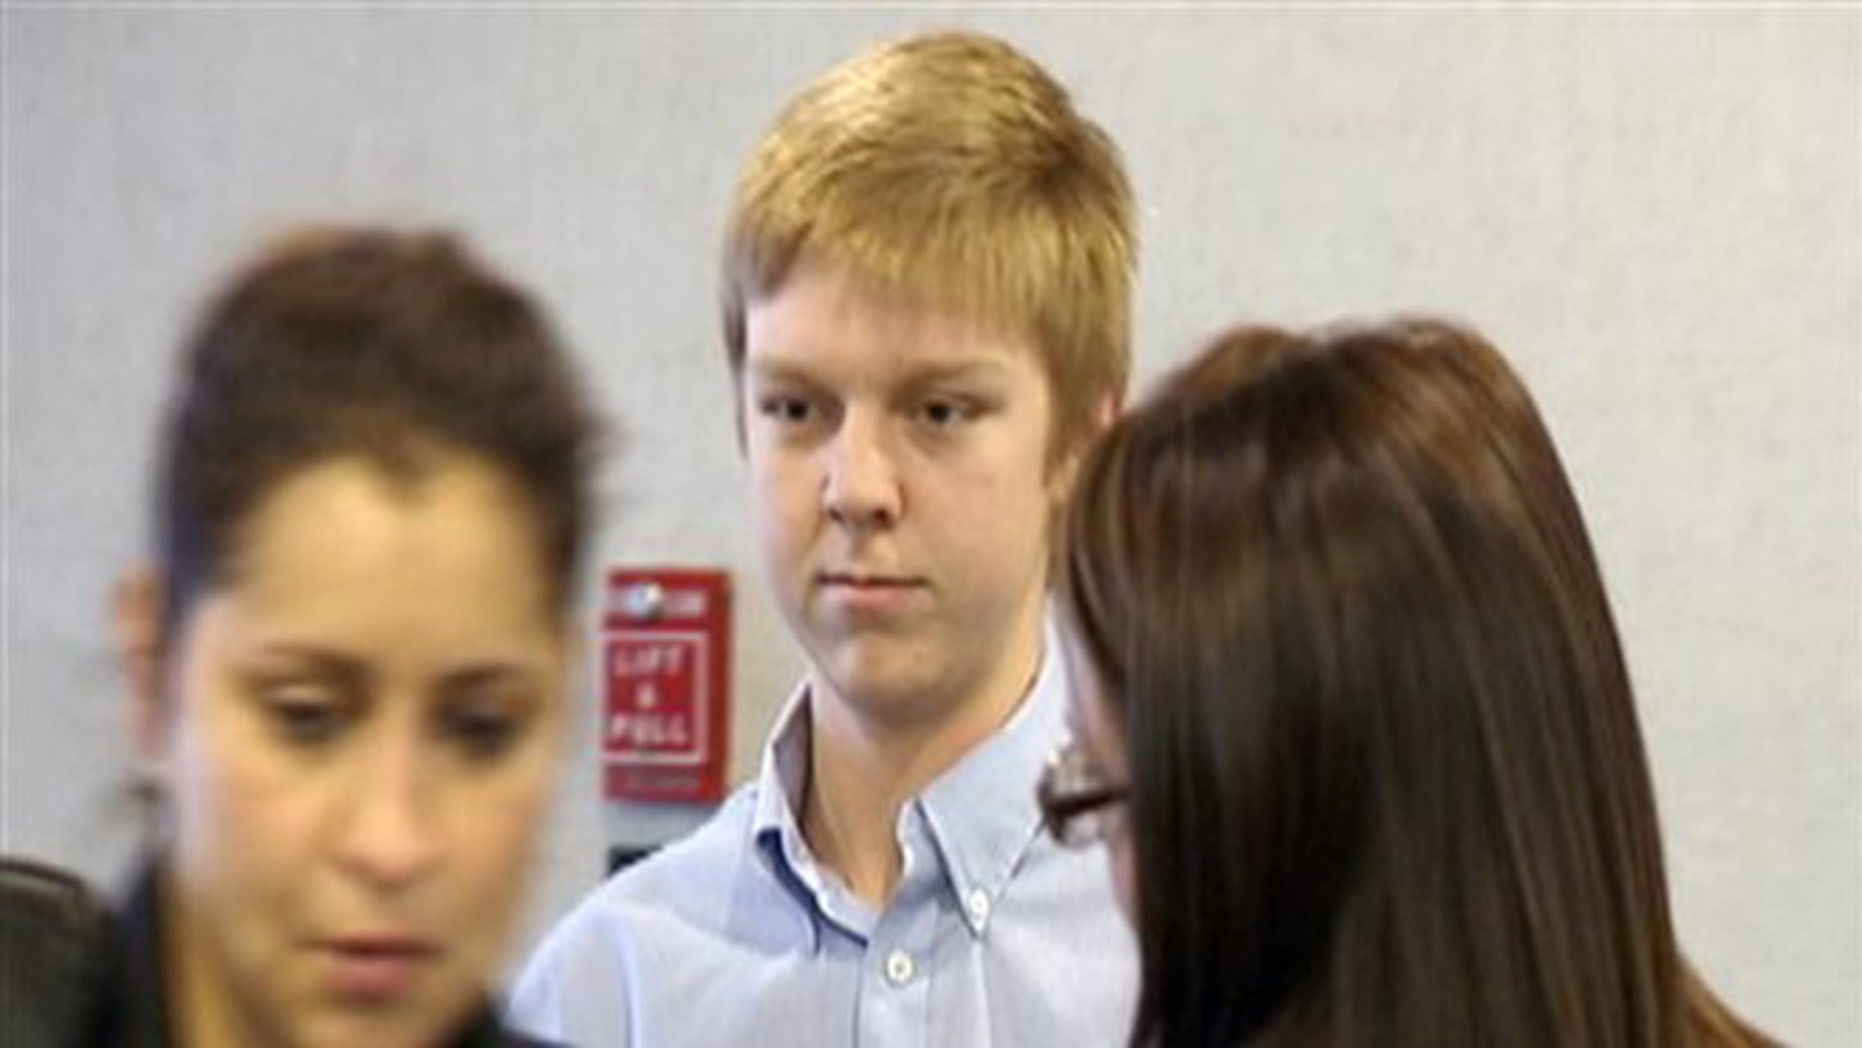 Ethan Couch is seen during his court hearing in a December 2013 image taken from video.